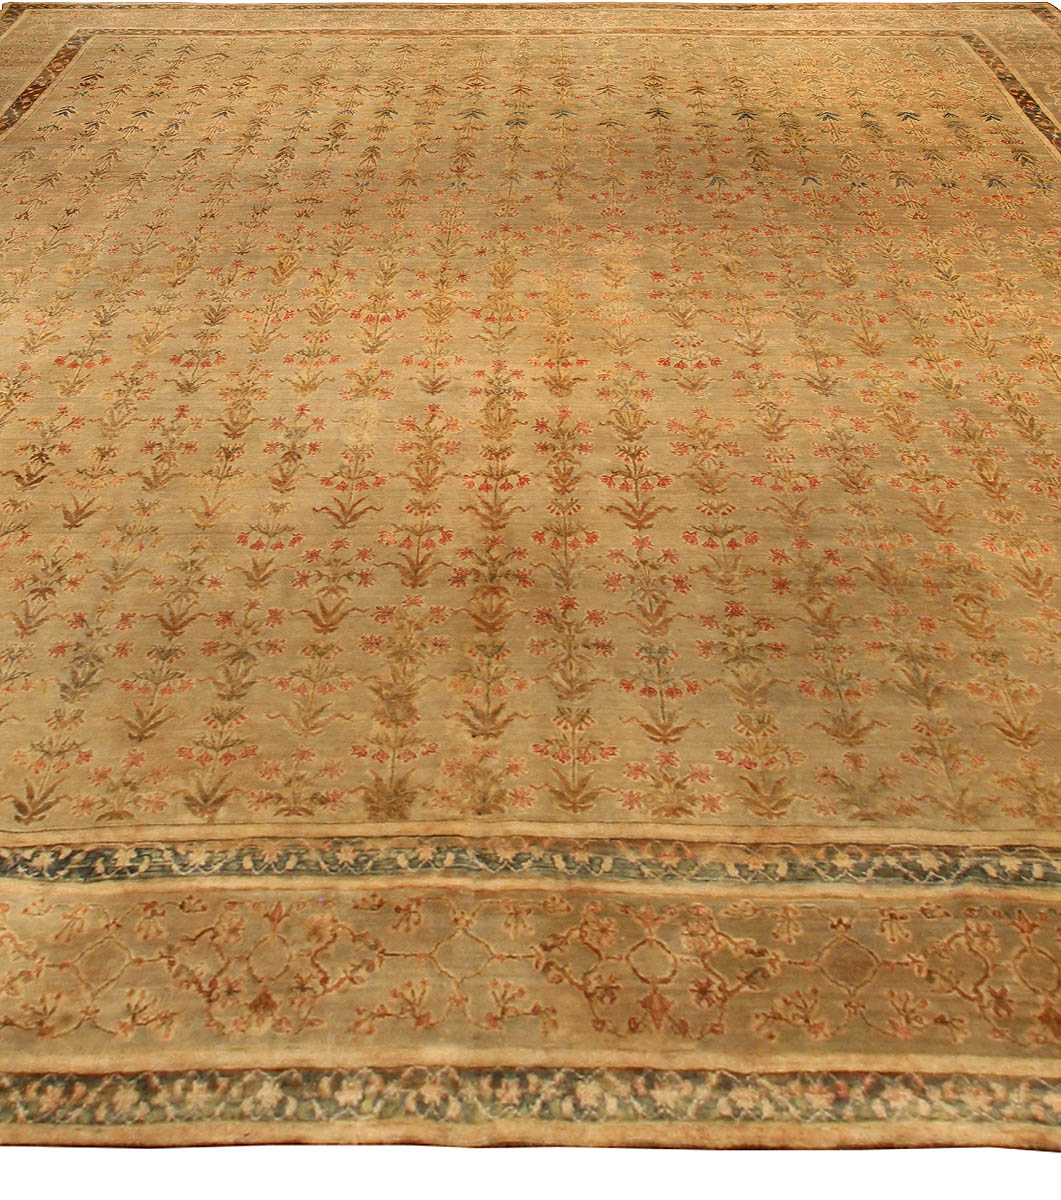 Arts And Crafts Rugs With Exciting Indian Agra Rug Design: Antique Indian Agra Carpet BB3012 By Doris Leslie Blau